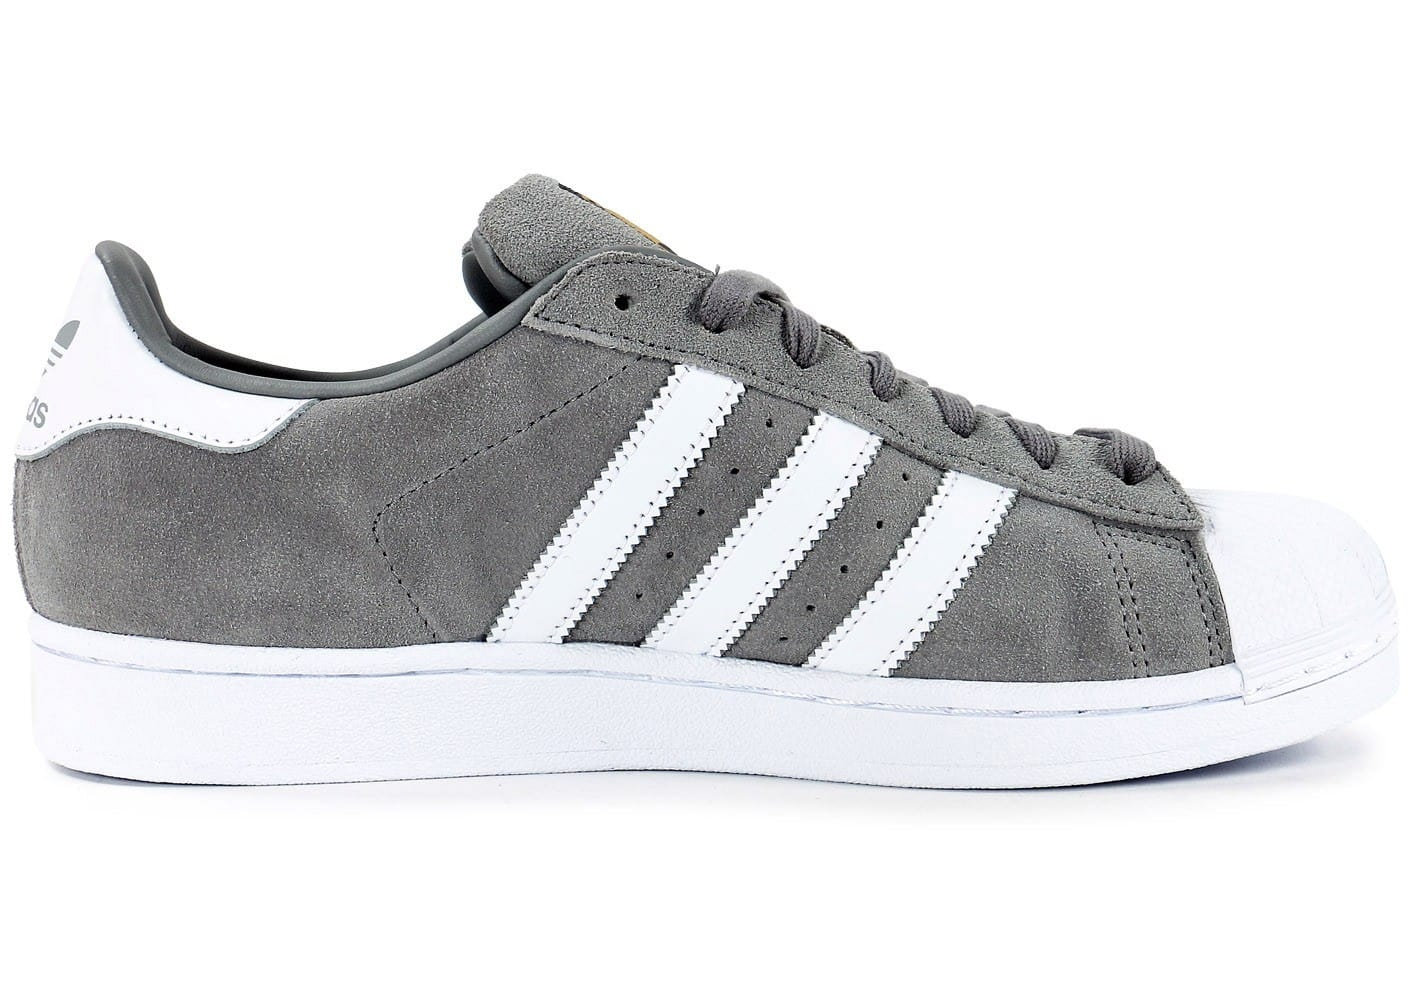 adidas superstar toute grise